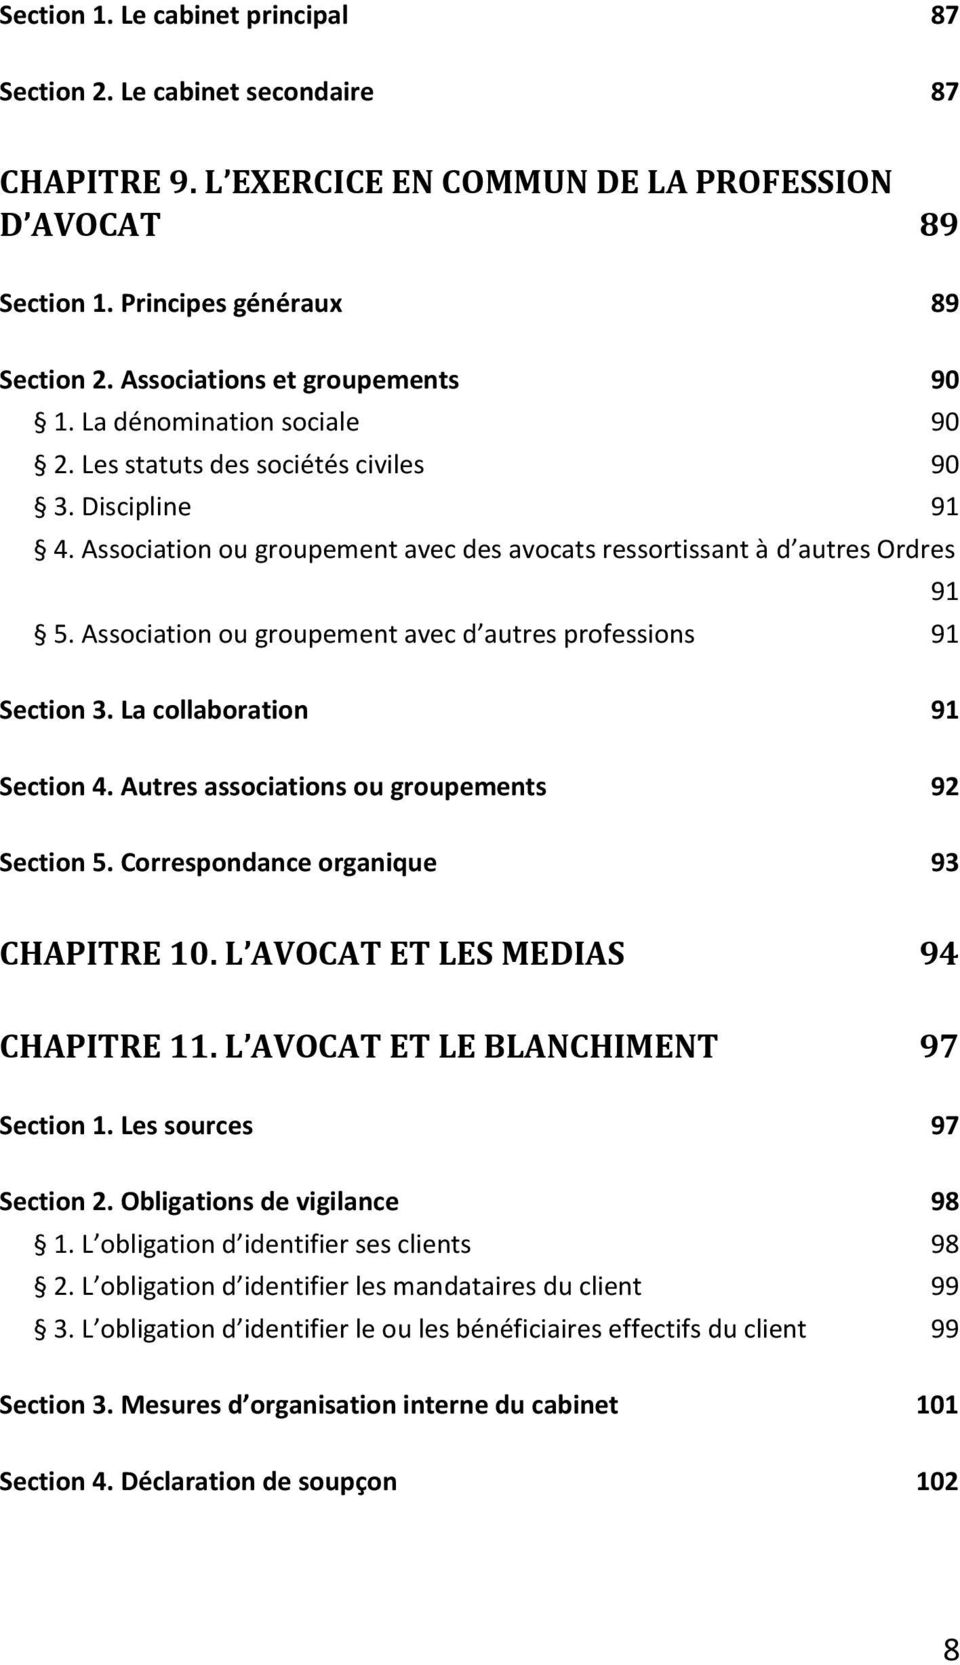 Association ou groupement avec d autres professions 91 Section 3. La collaboration 91 Section 4. Autres associations ou groupements 92 Section 5. Correspondance organique 93 CHAPITRE 10.